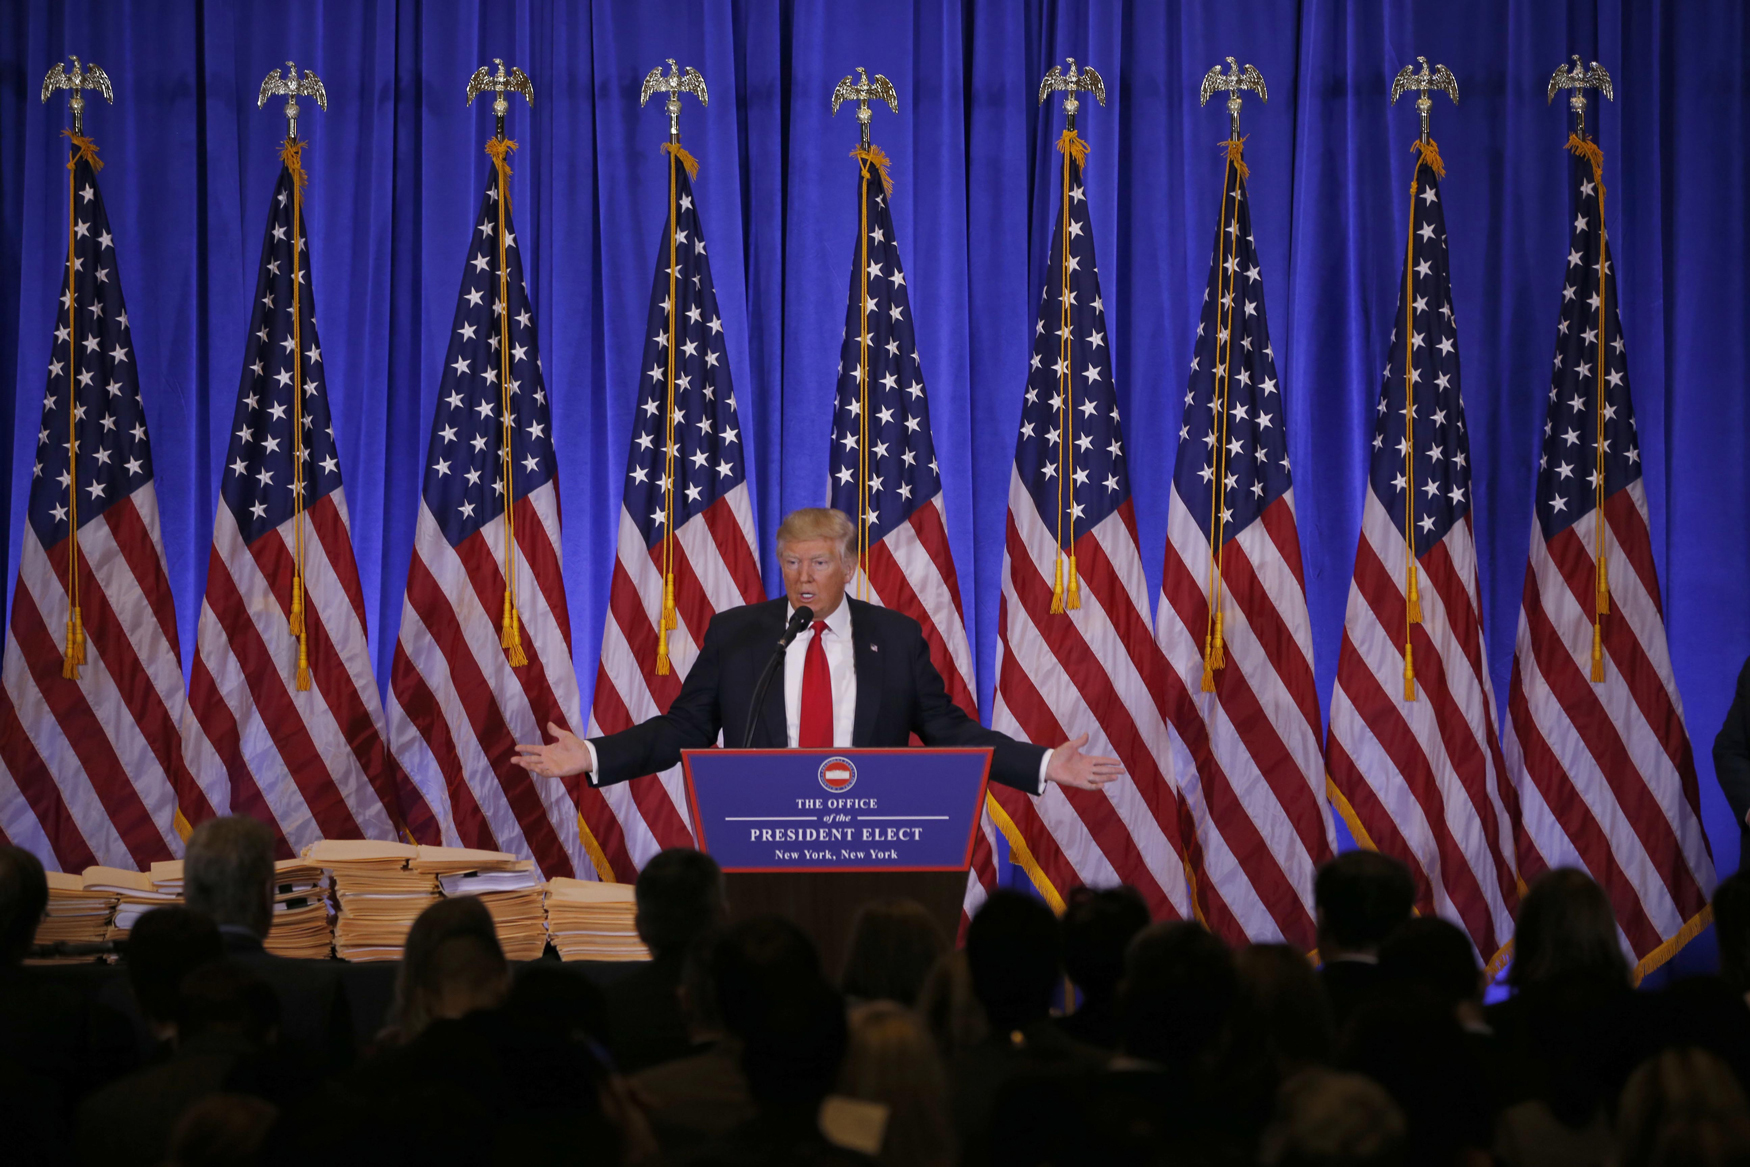 NEW YORK, Jan. 11, 2017  -- U.S. President-elect Donald Trump speaks during a news conference in New York, the United States, on Jan. 11, 2017. U.S. President-elect Donald Trump met the press Wednesday for the first news conference since the election. (Xinhua/Gary Hershorn via Getty Images)